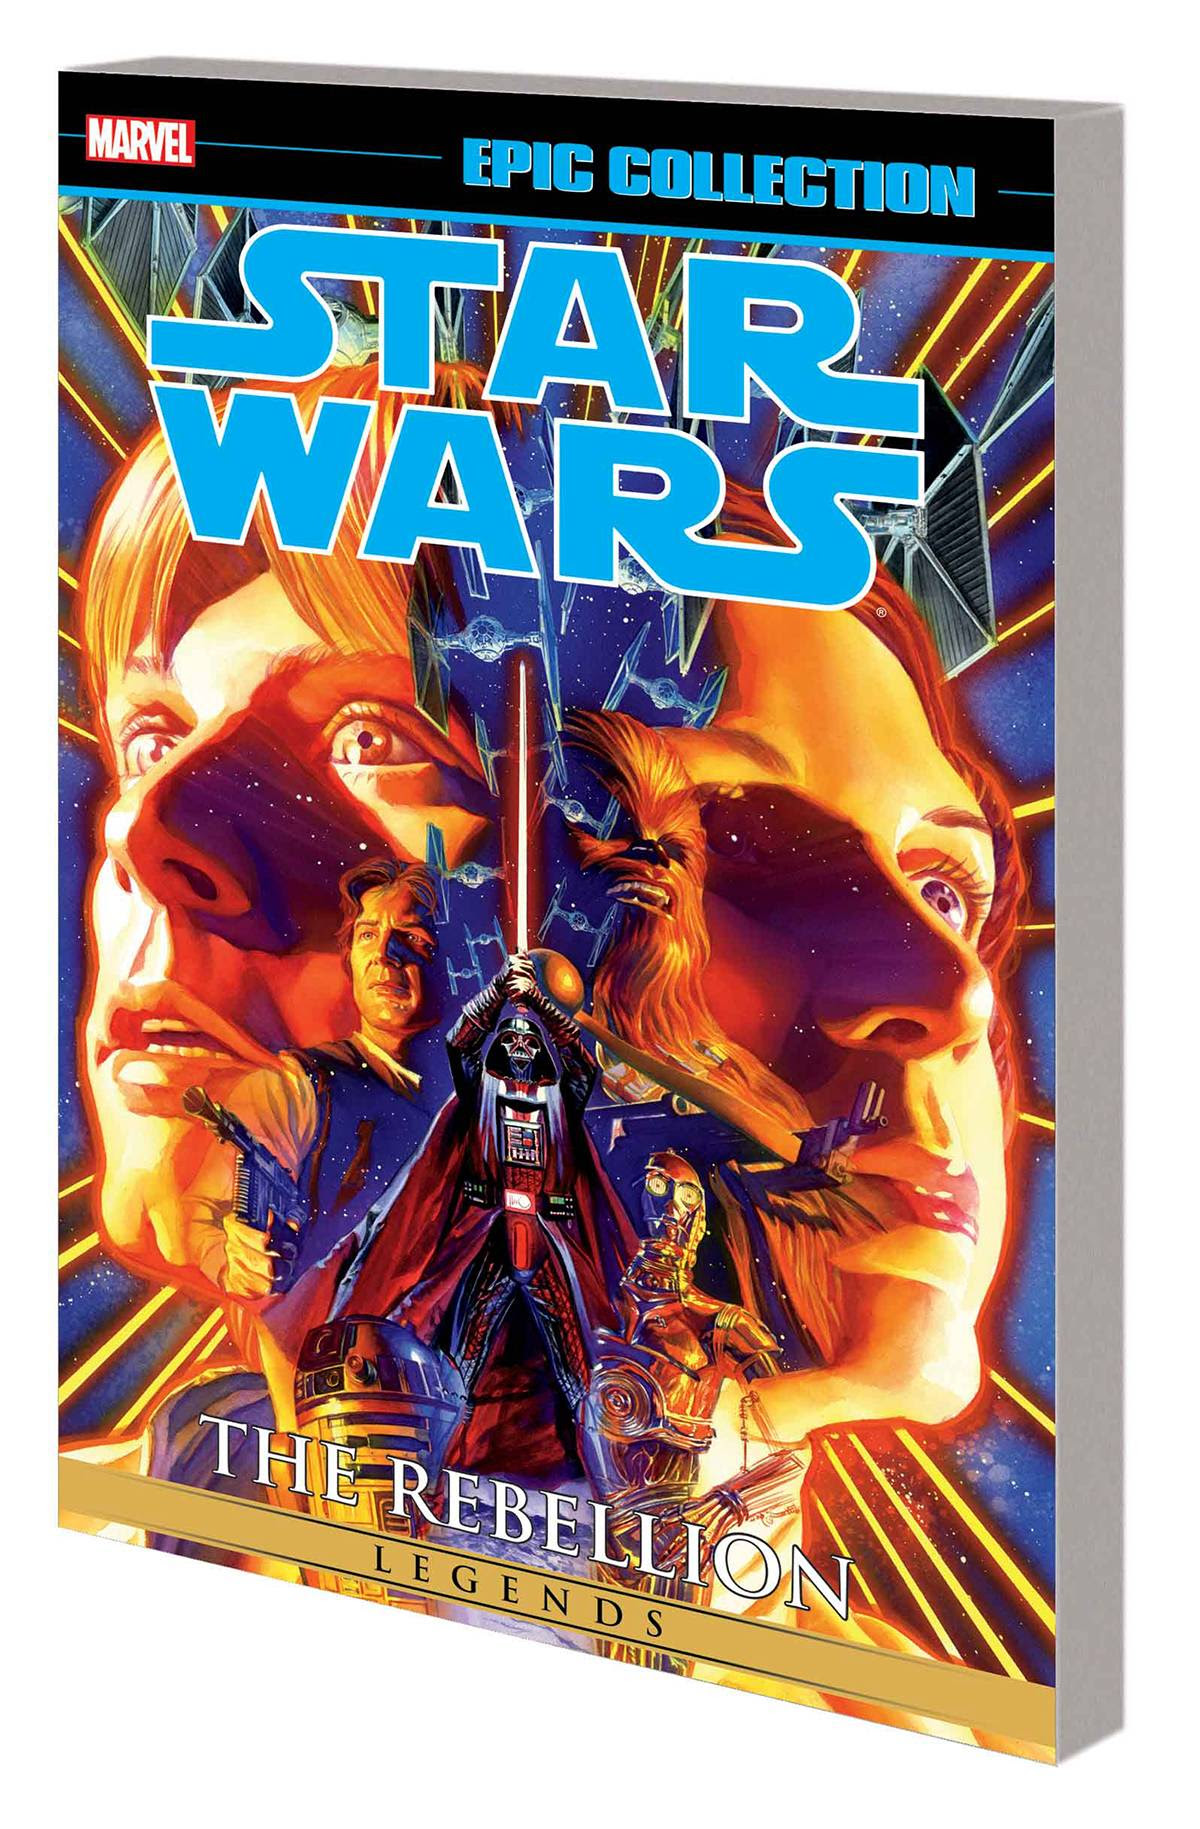 Star Wars Legends Epic Collection Vol 1 The Rebellion